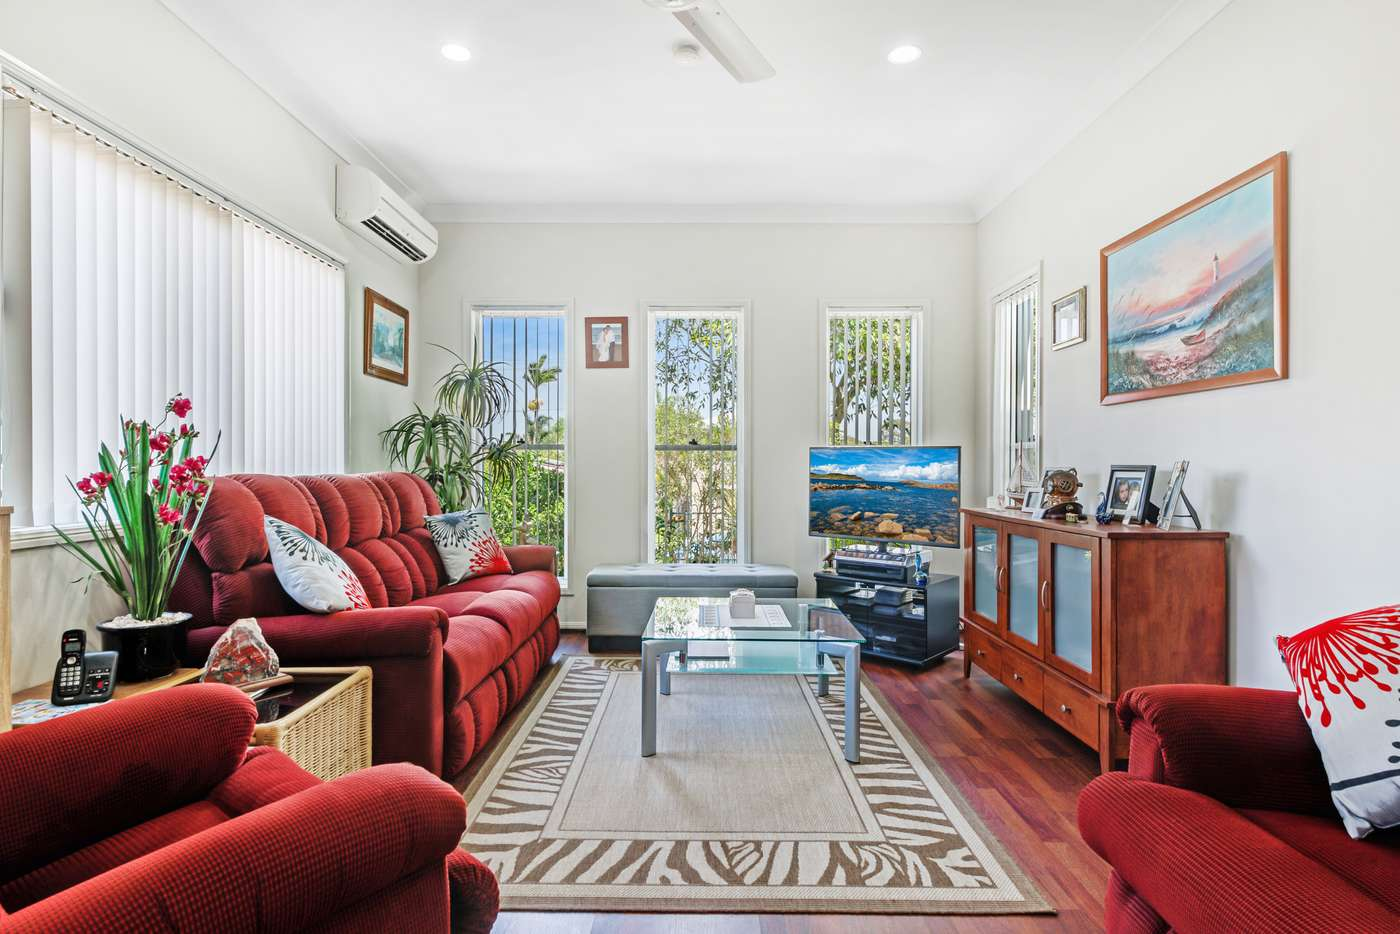 Fifth view of Homely house listing, 42 Robertson Ave, Margate QLD 4019